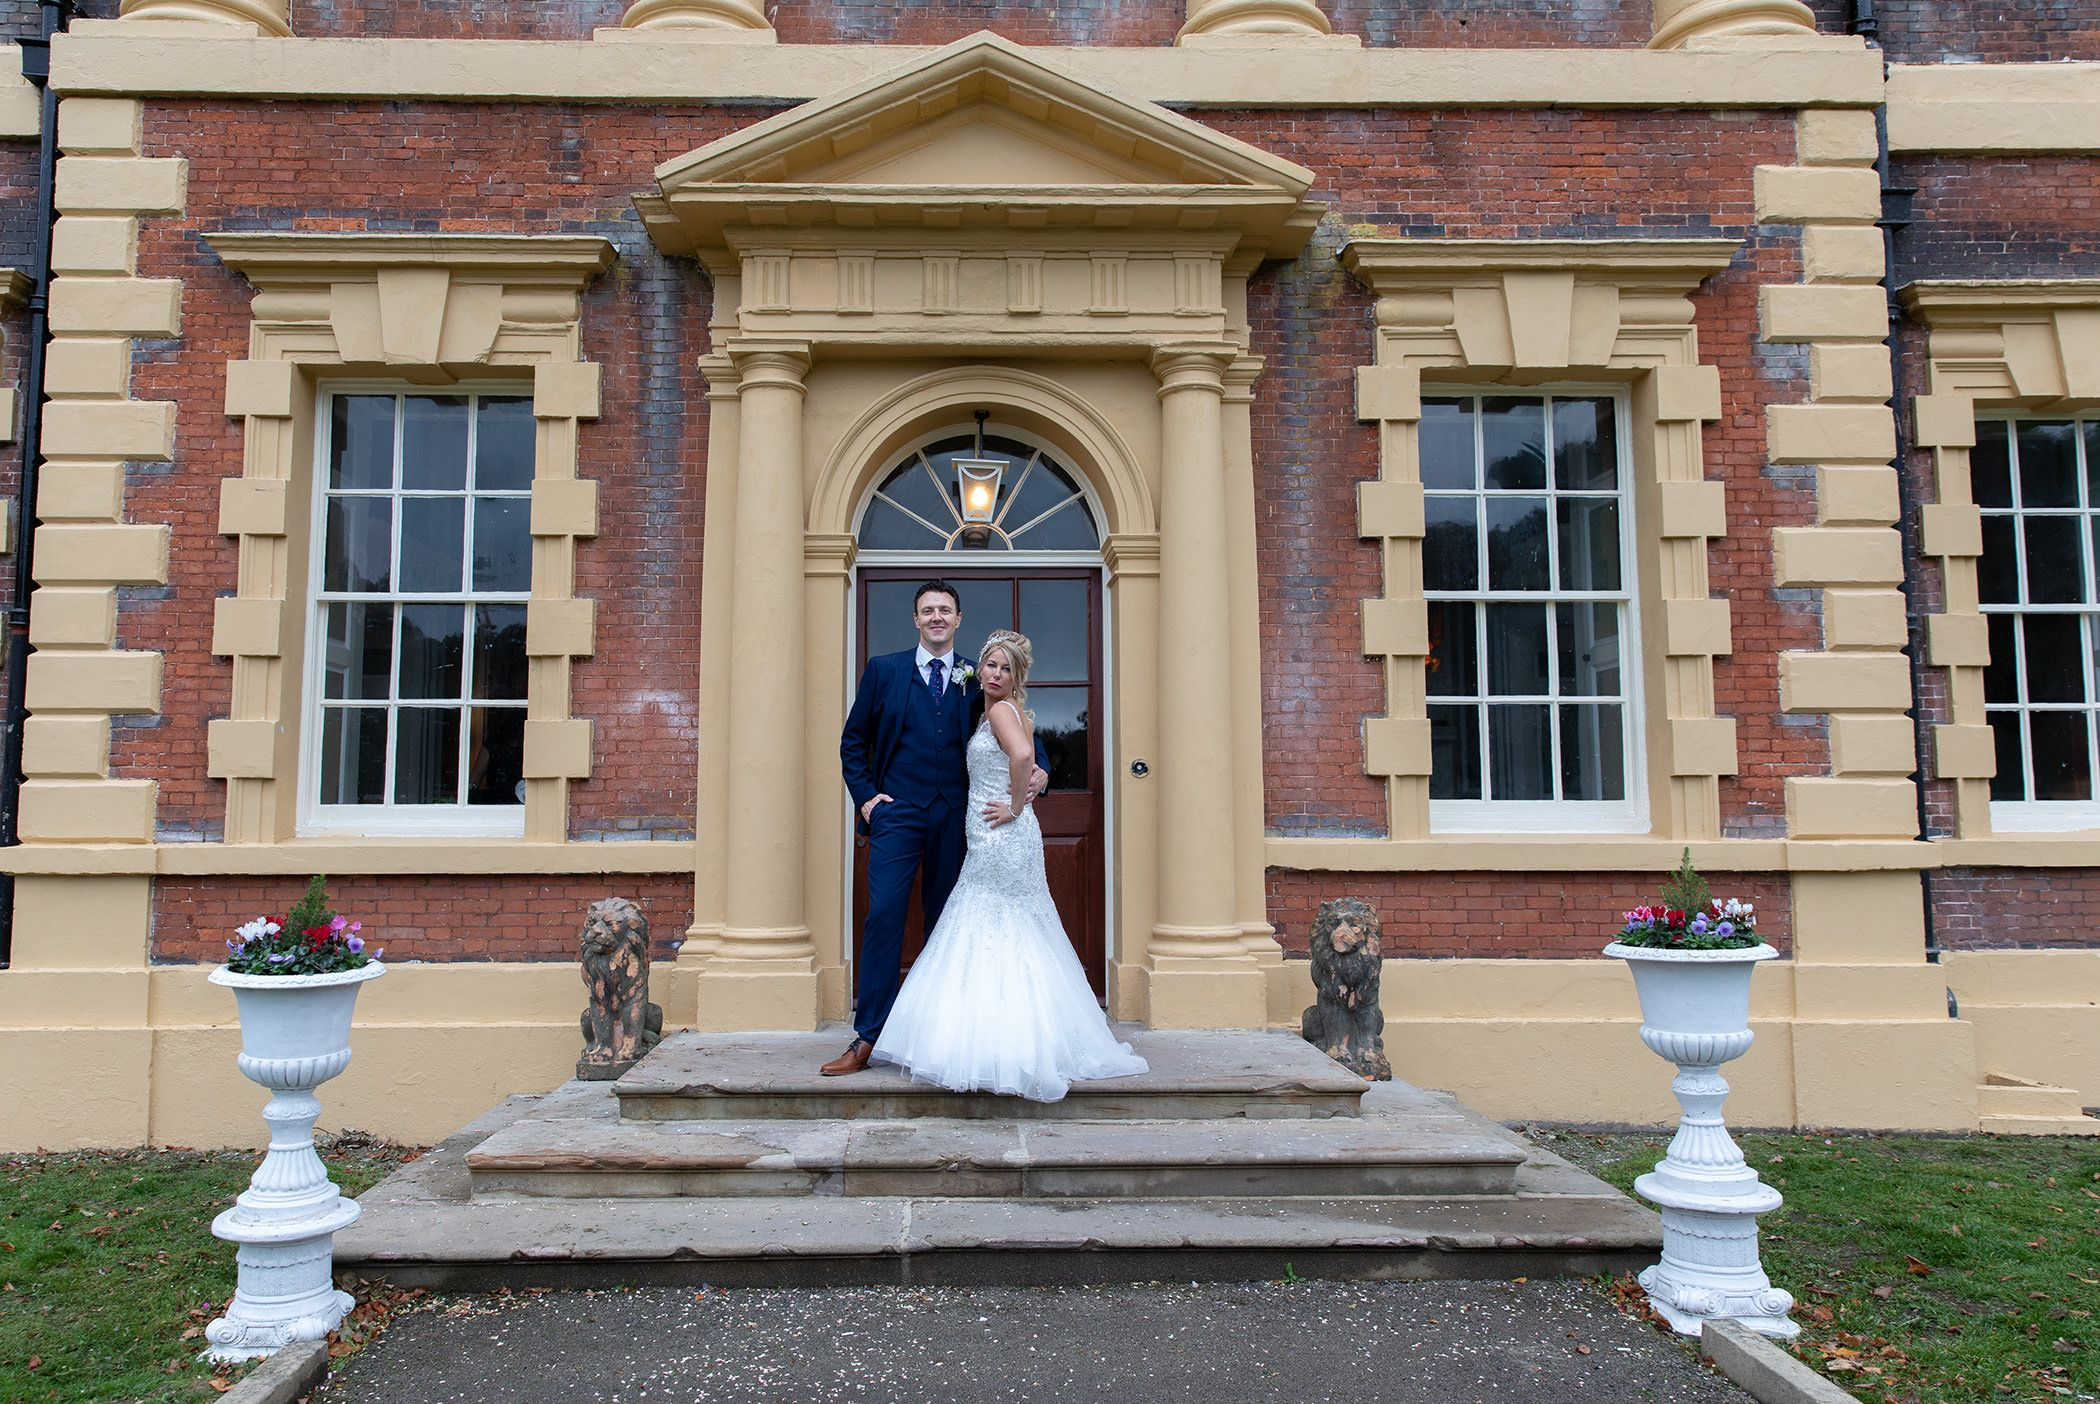 the bride and groom at Lytham Hall wedding